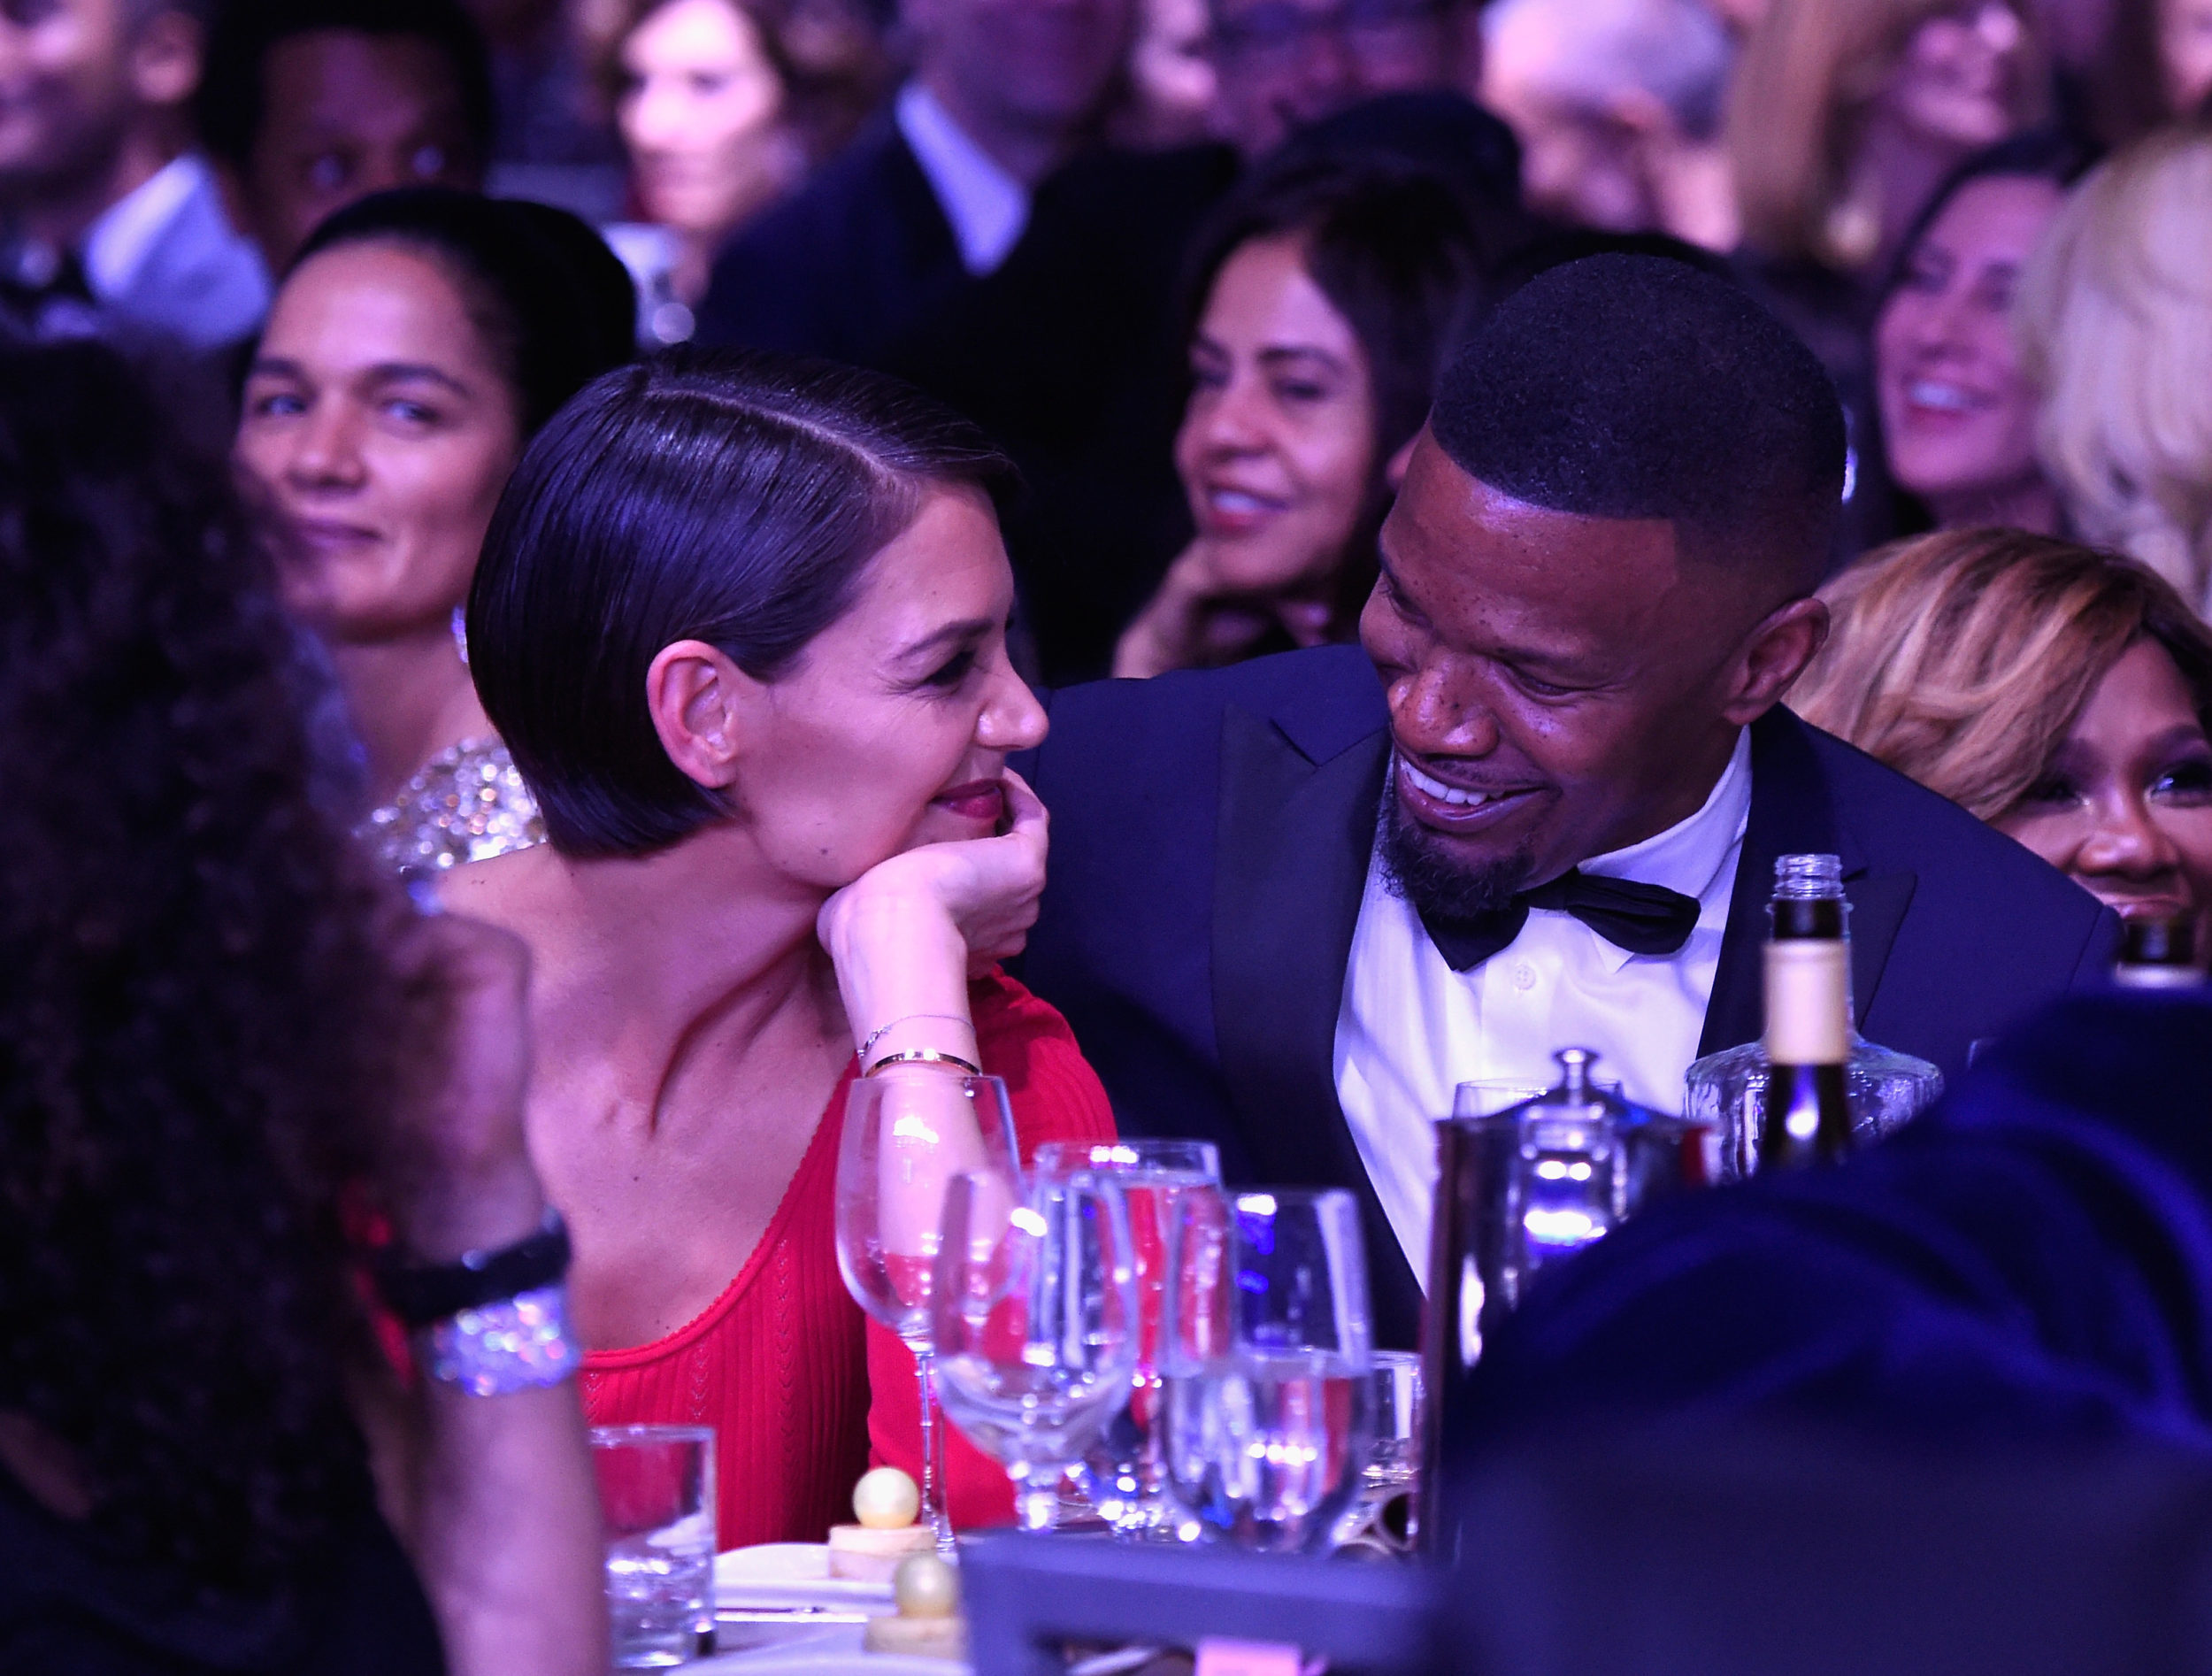 Jamie Foxx dodged a question about Katie Holmes by walking out of a live interview, and we don't blame him